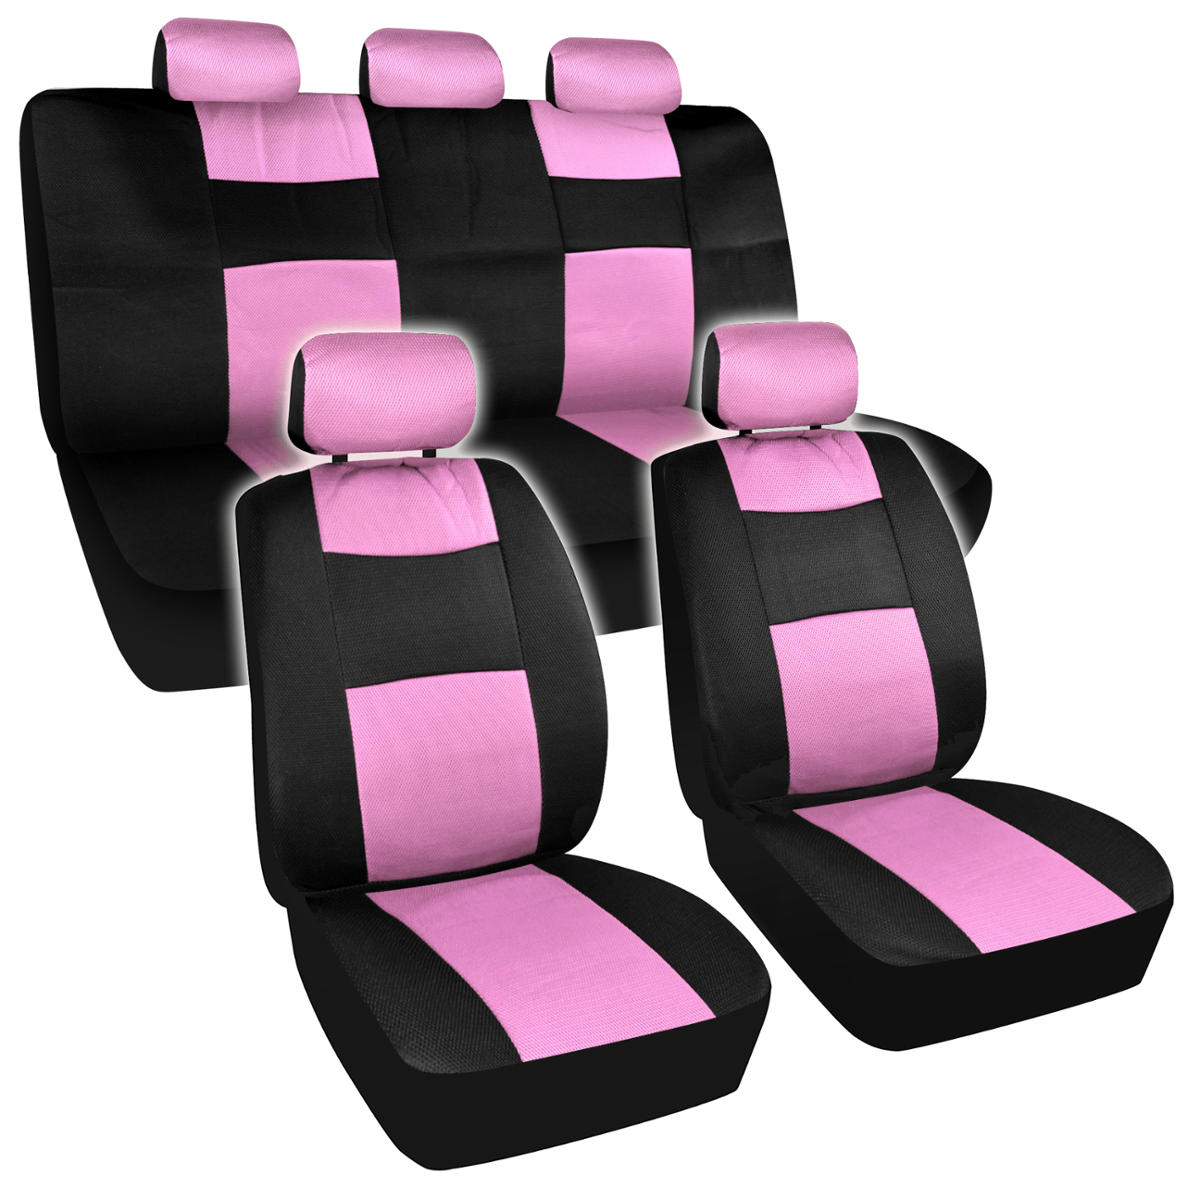 Seat Covers Black And Pink Mesh Cloth Polyester 2 Color